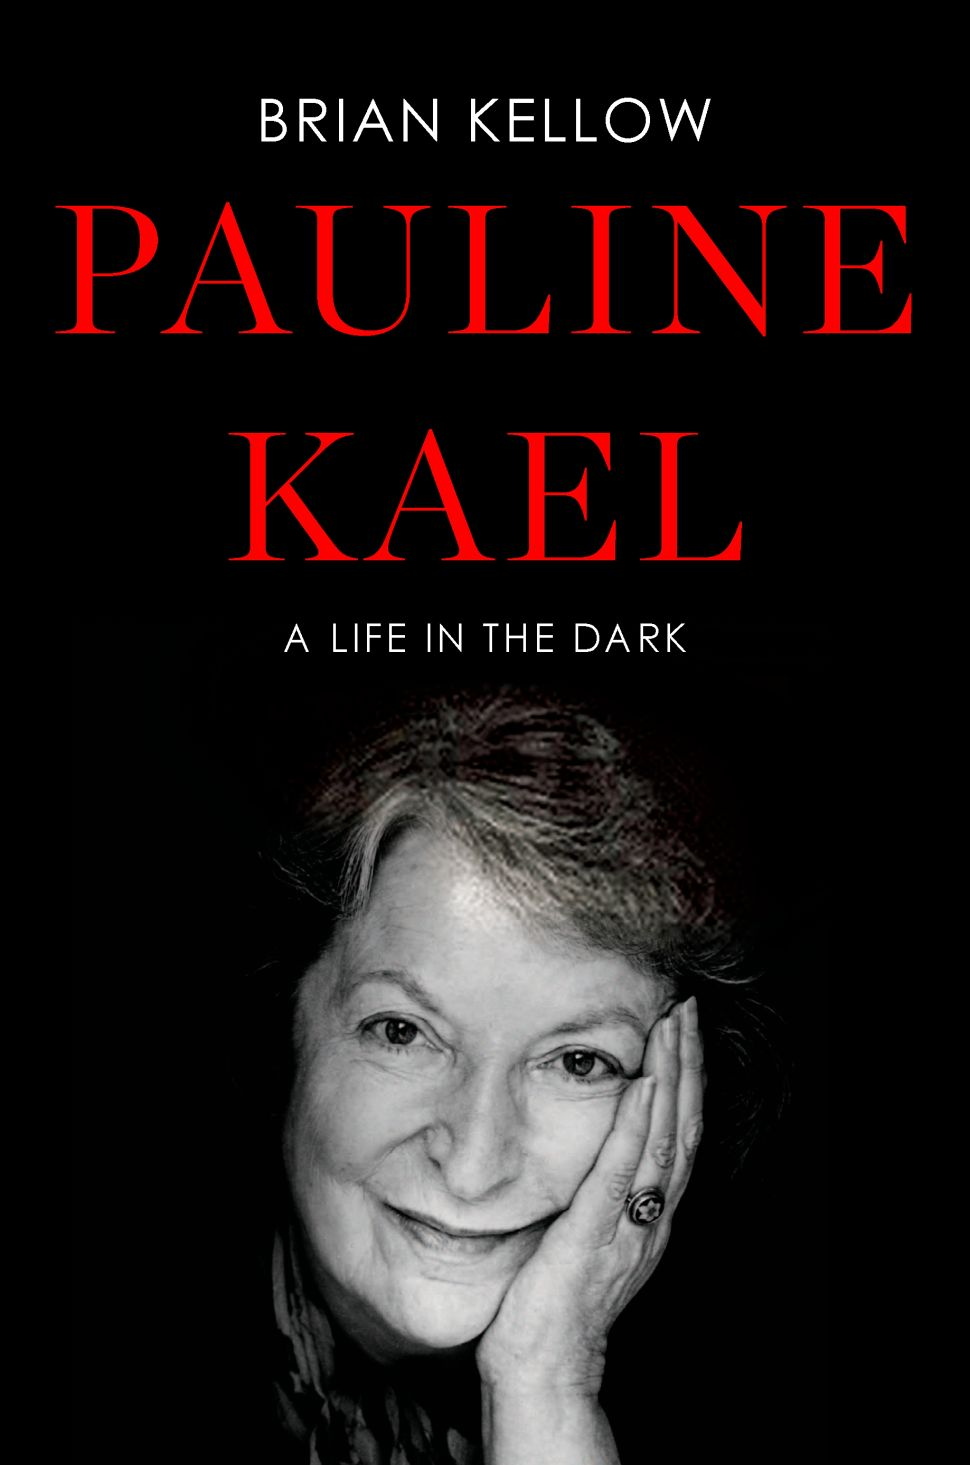 The Iron Lady: A New Biography of Pauline Kael